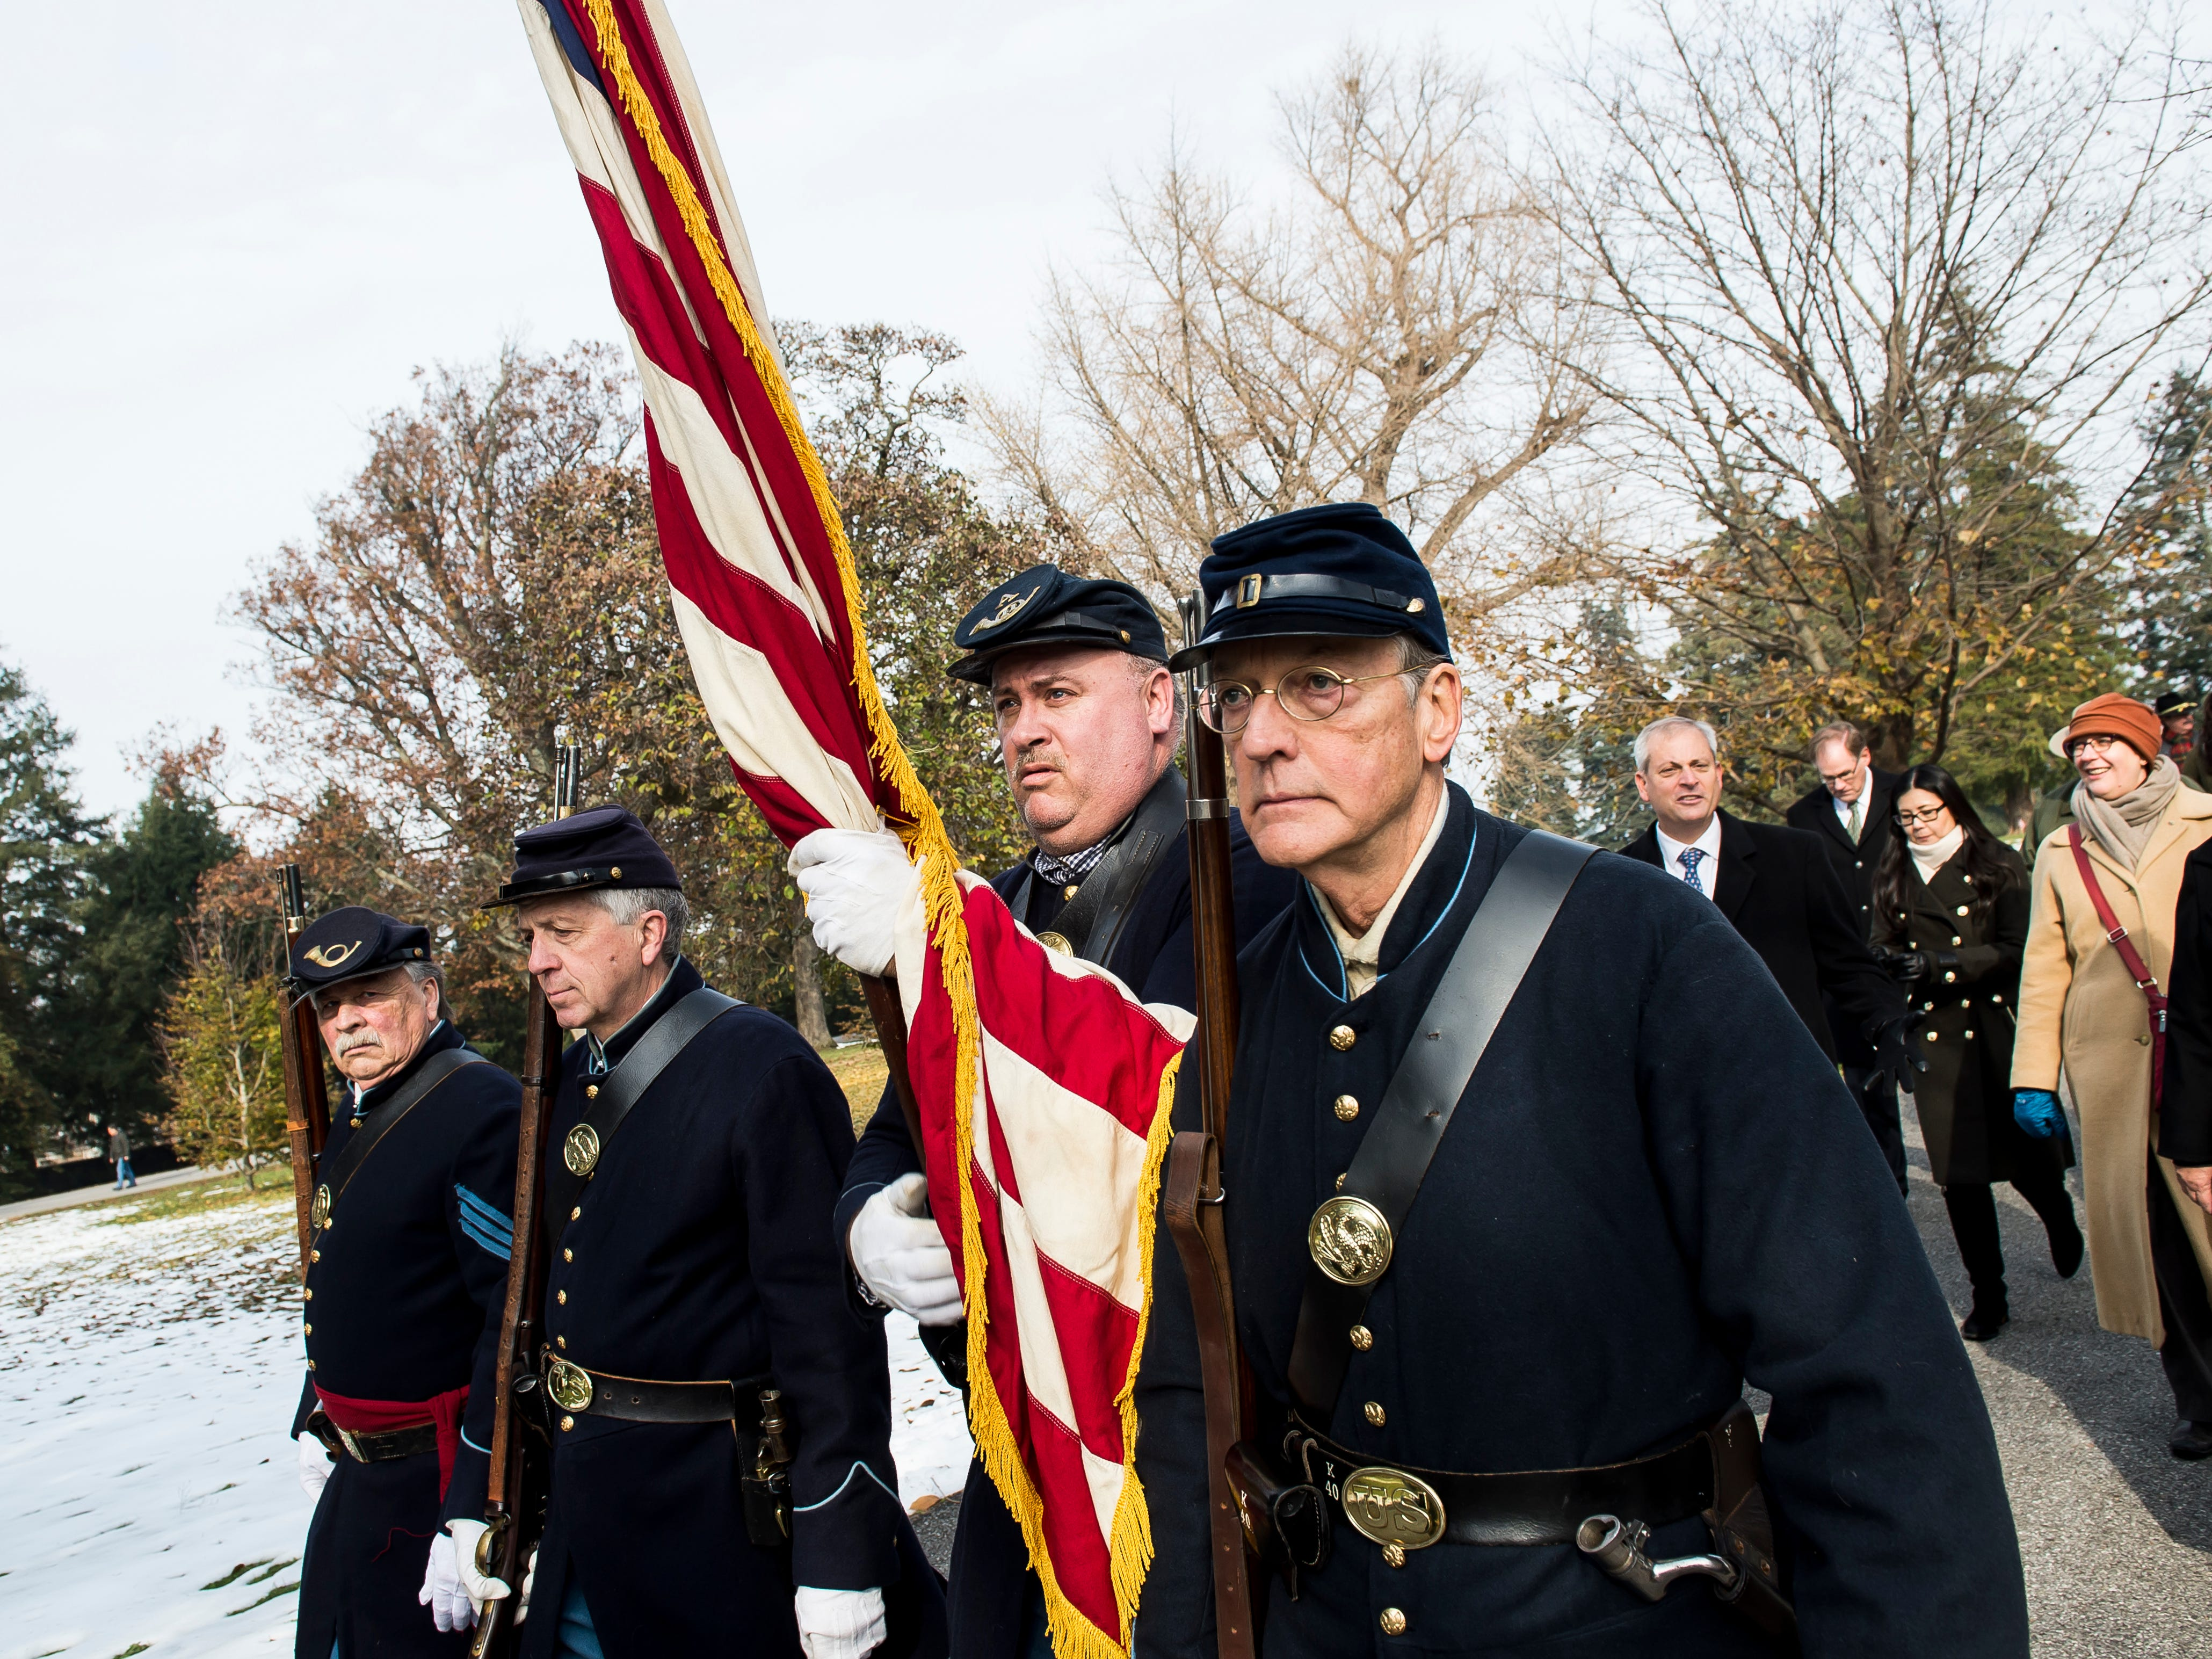 Members of the 11th PA Volunteer Infantry Fife and Drum Corps Color Guard march from Soldiers' National Monument following the laying of memorial wreaths ceremony during Dedication Day in Gettysburg on November, 19, 2018.